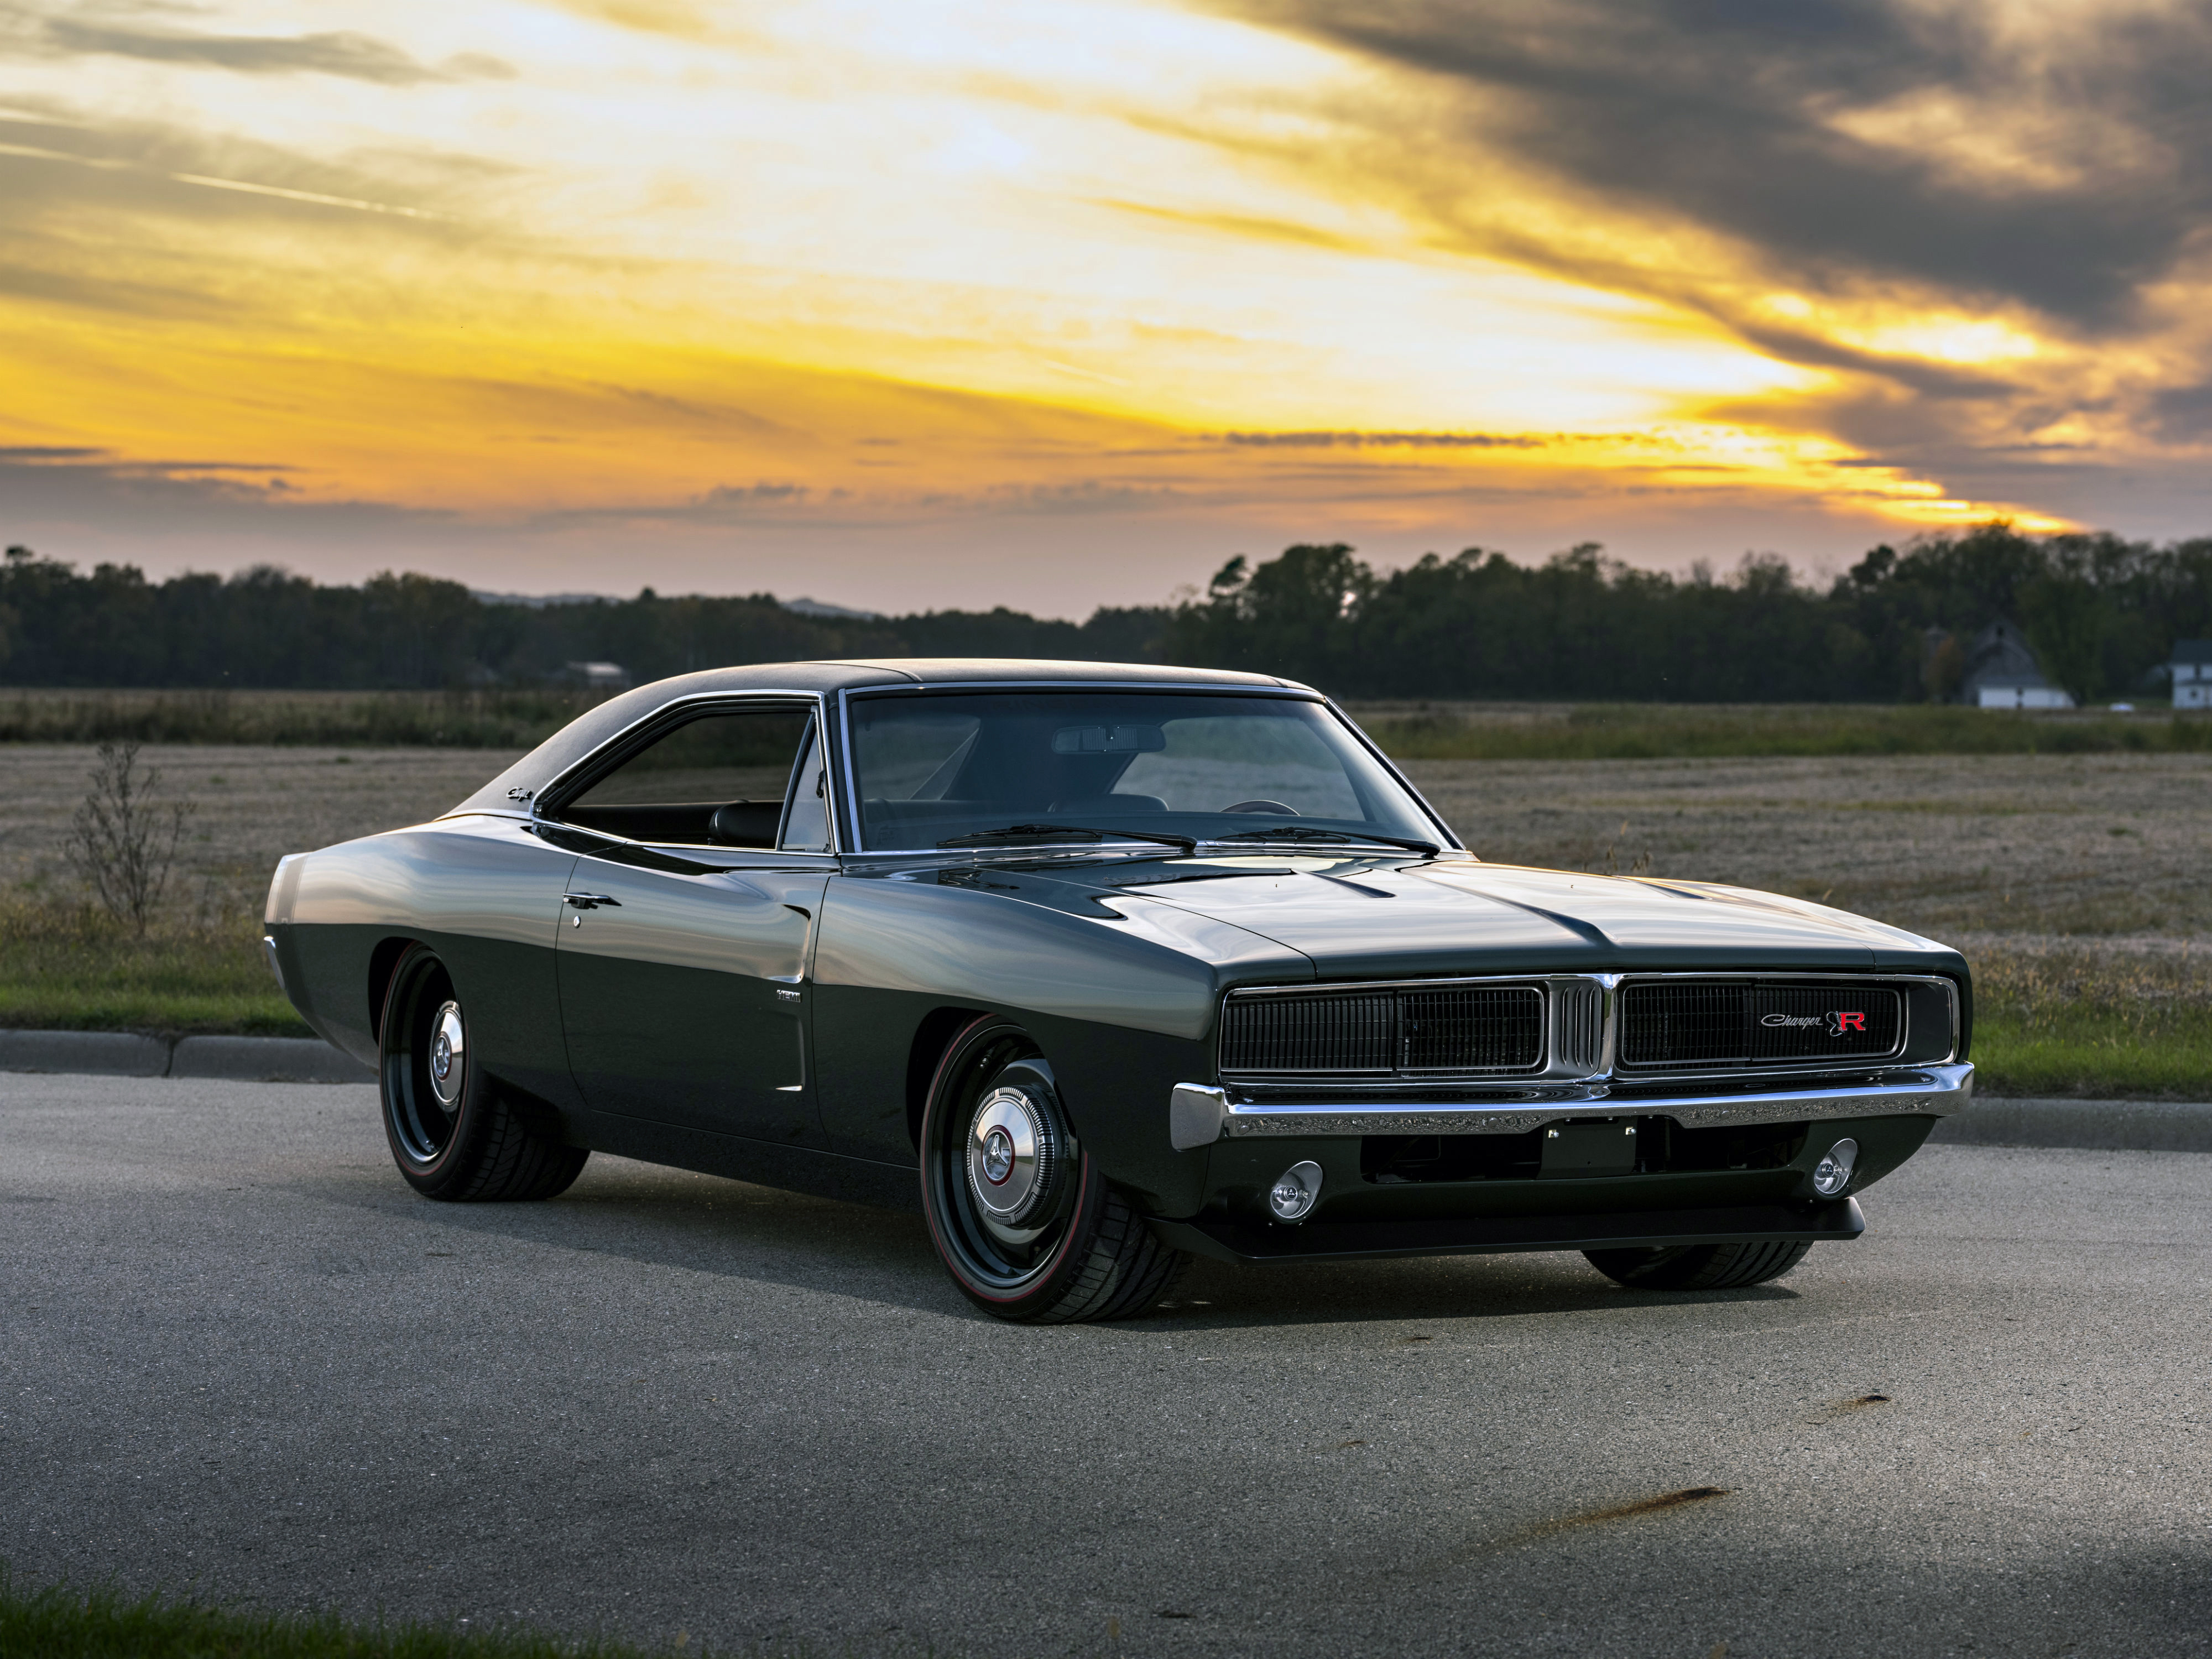 1969 Ringbrothers Dodge Charger Defector Front View Hd Cars 4k Wallpapers Images Backgrounds Photos And Pictures